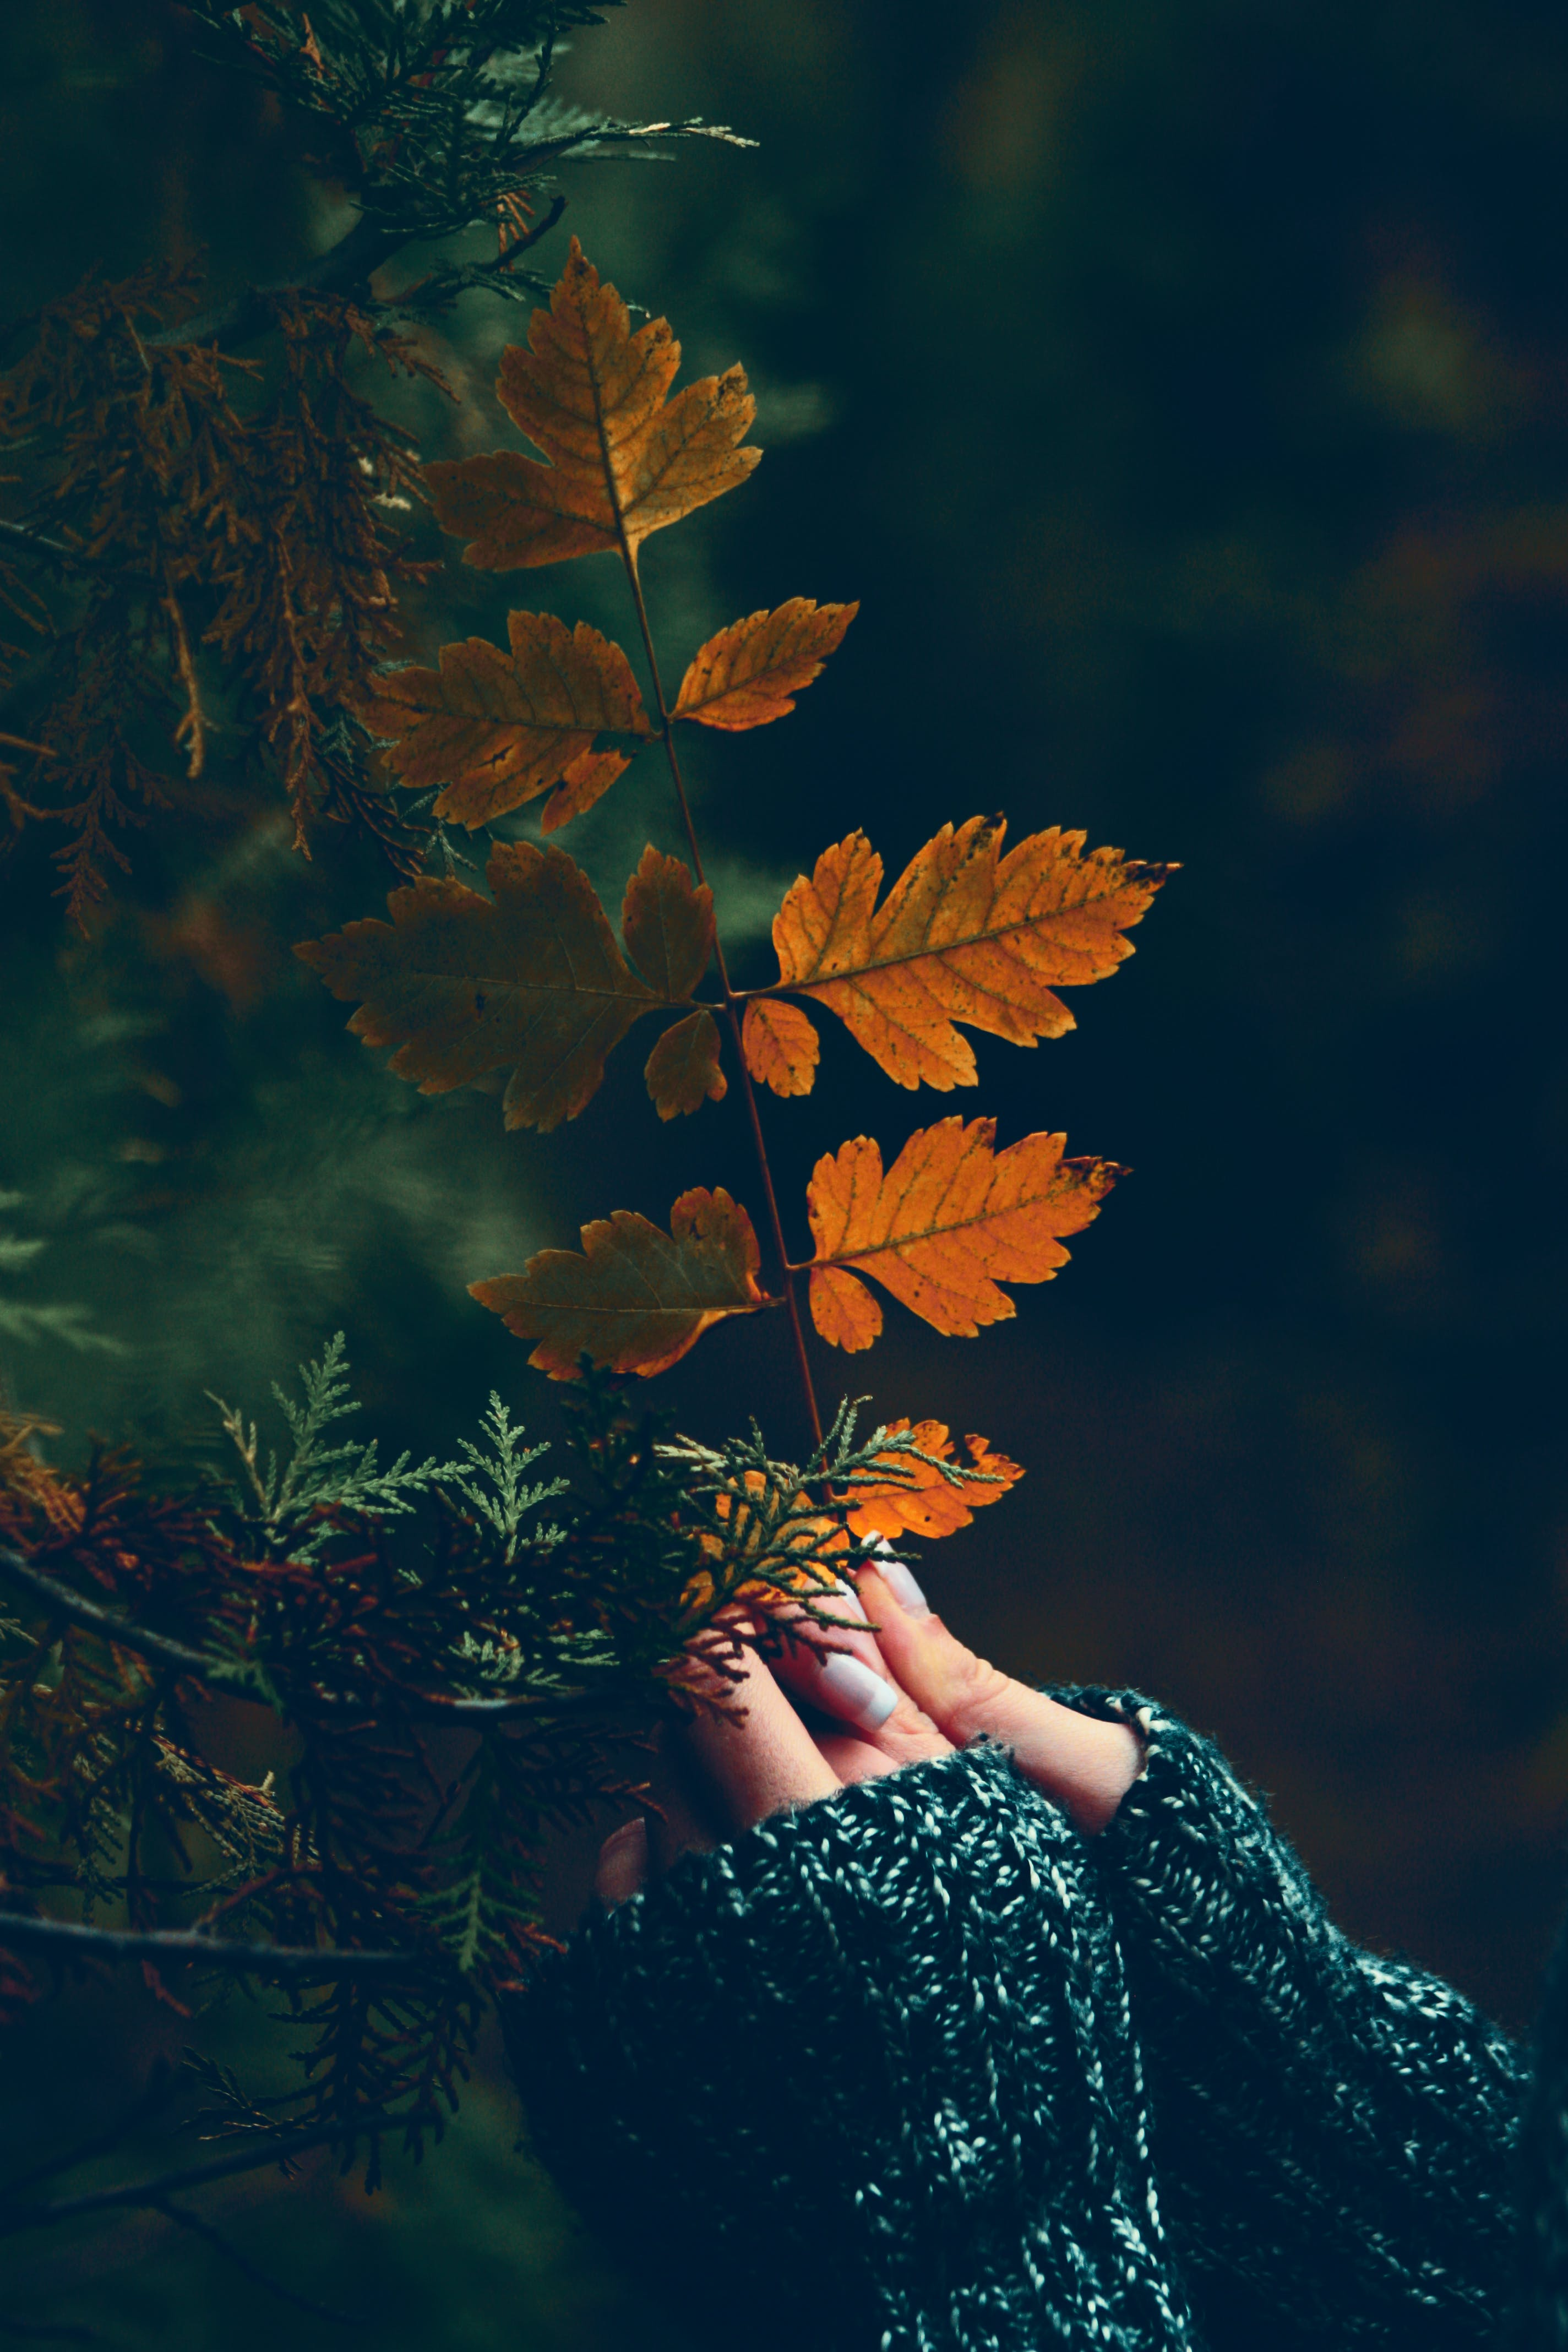 Free stock photo of hands, leaves, autumn, fall